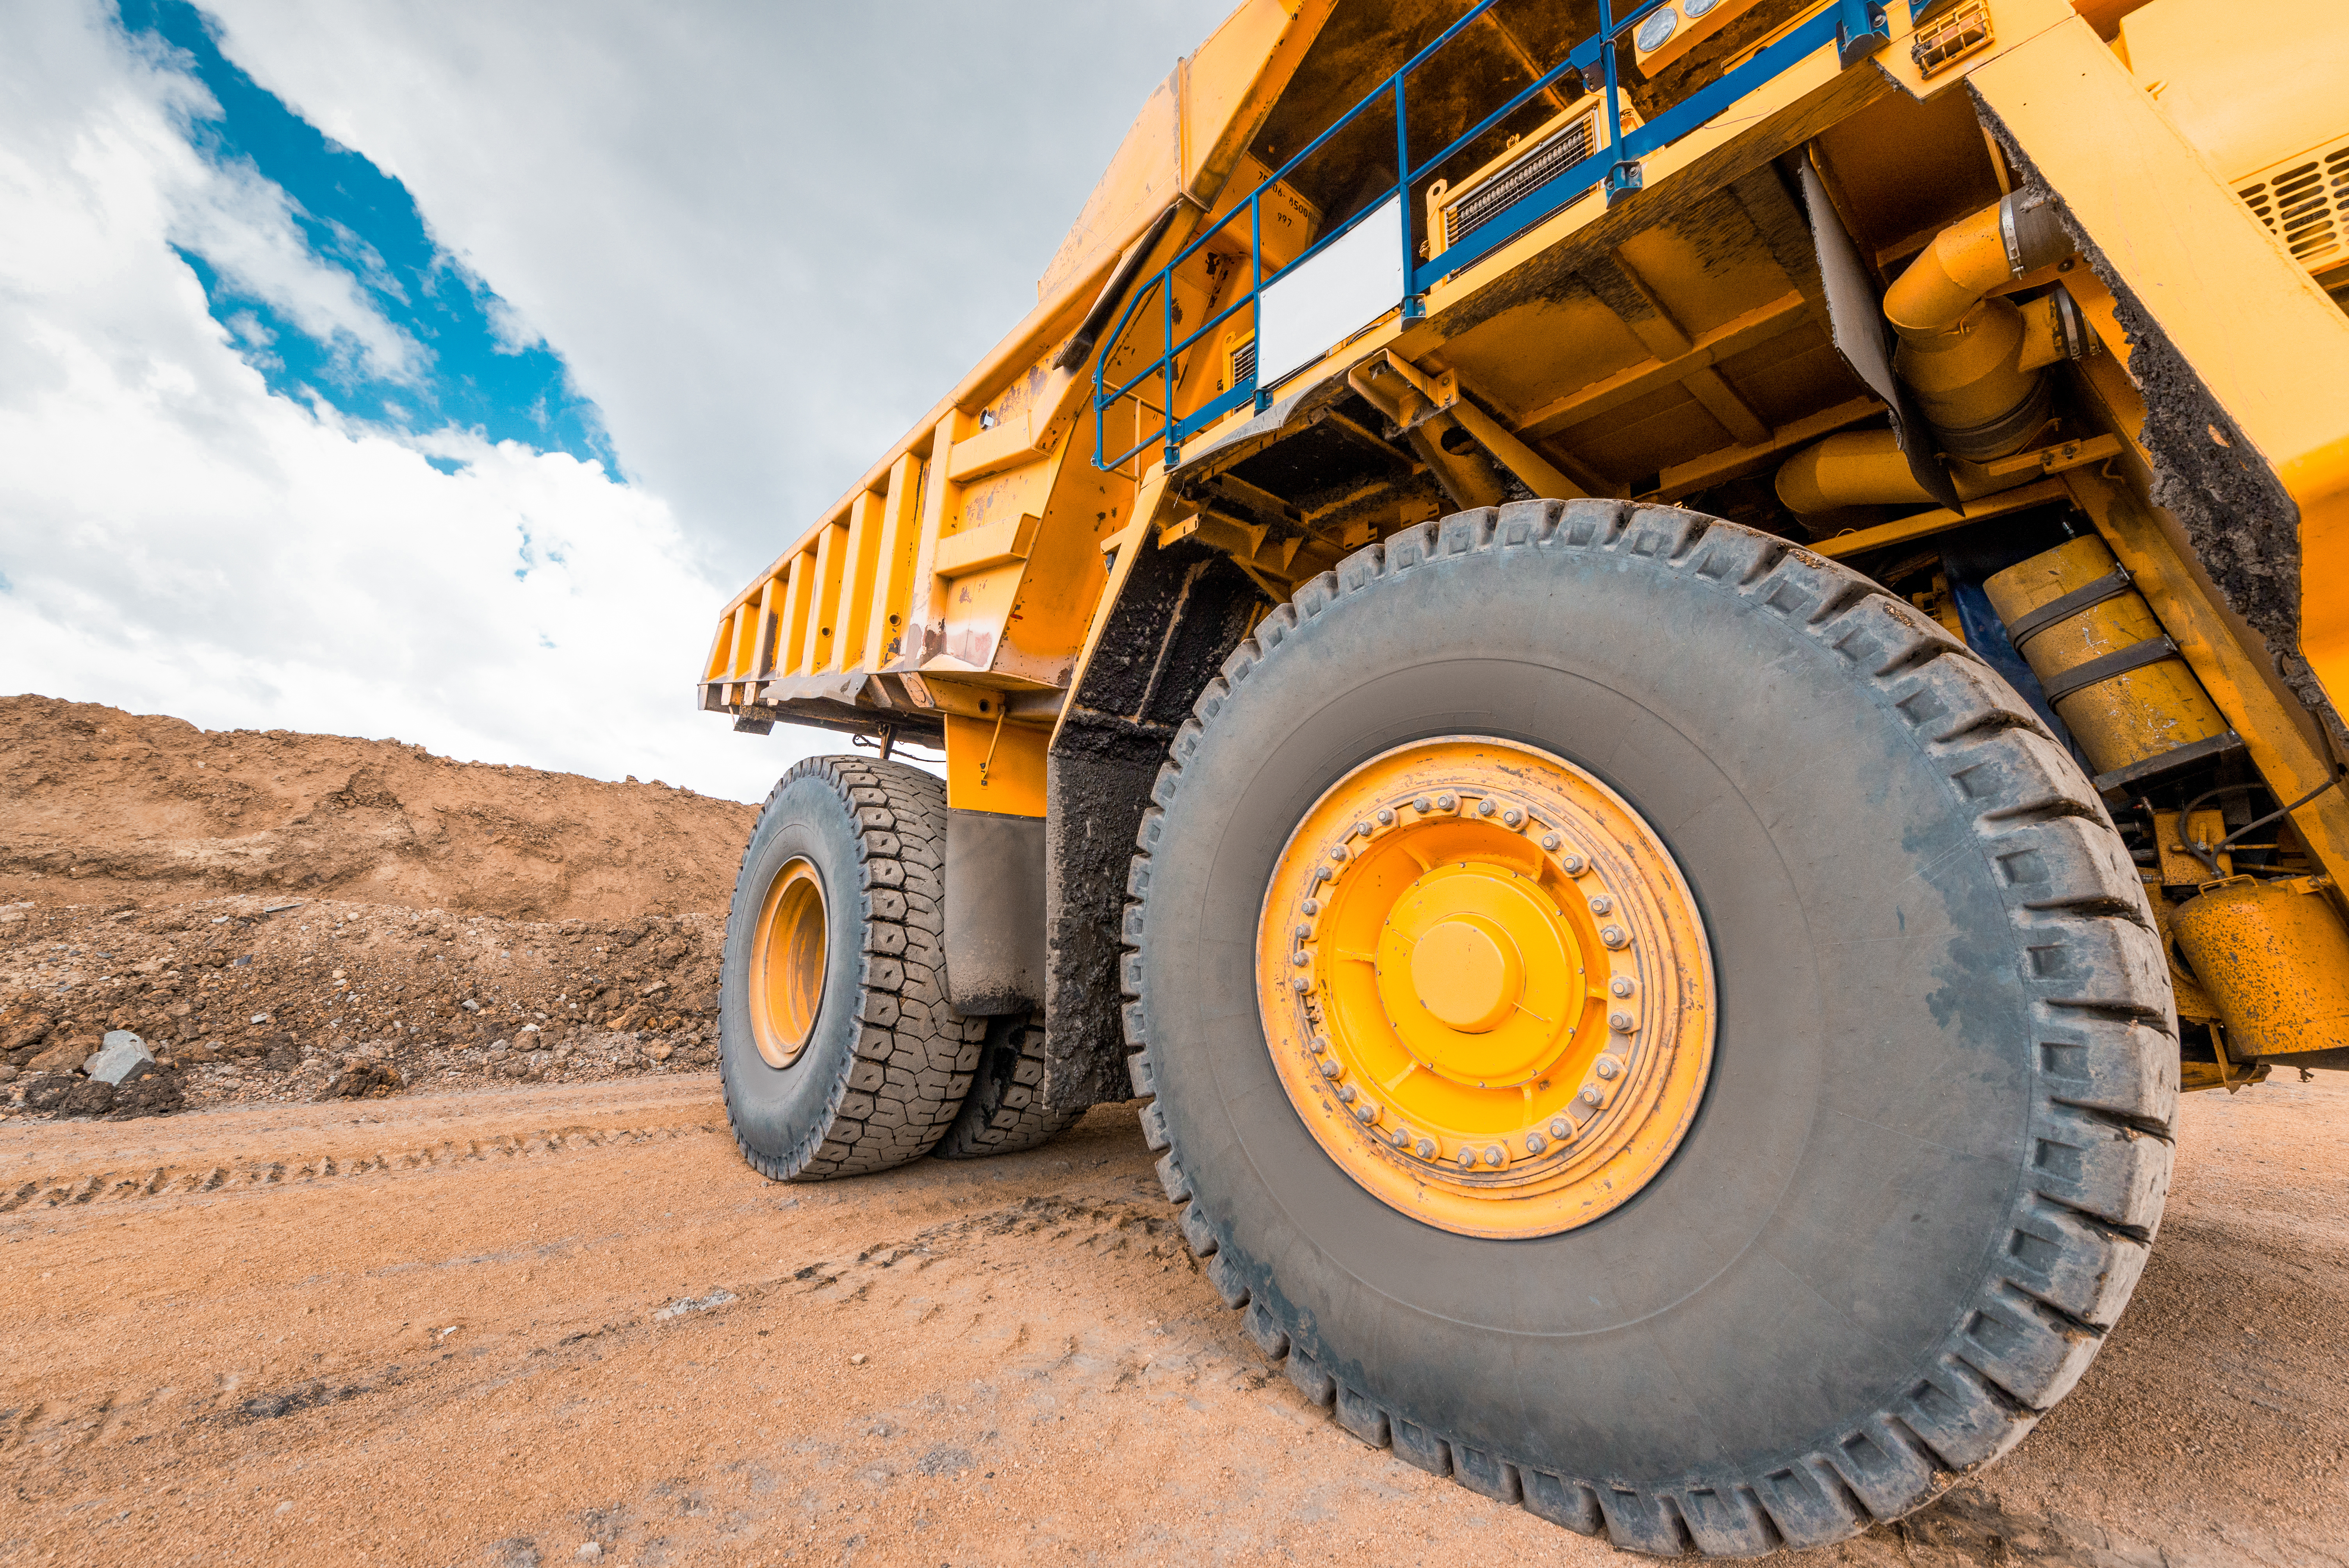 Diversus secures Rio Tinto IT Contract case study